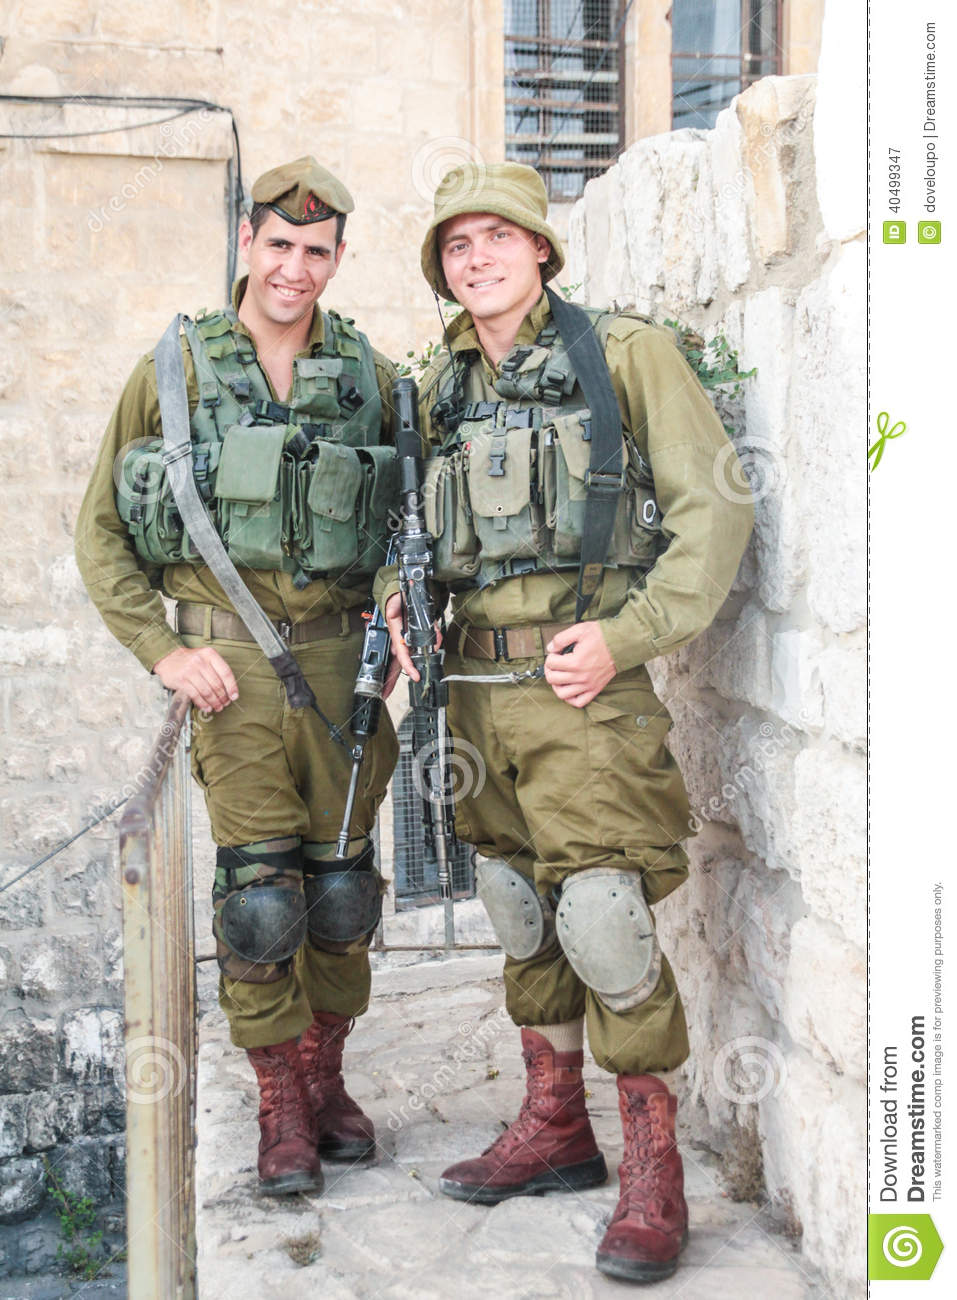 israeli-soldiers-idf-jerusalem-two-defence-force-personel-pose-photograph-eve-memorial-day-fallen-40499347.jpg